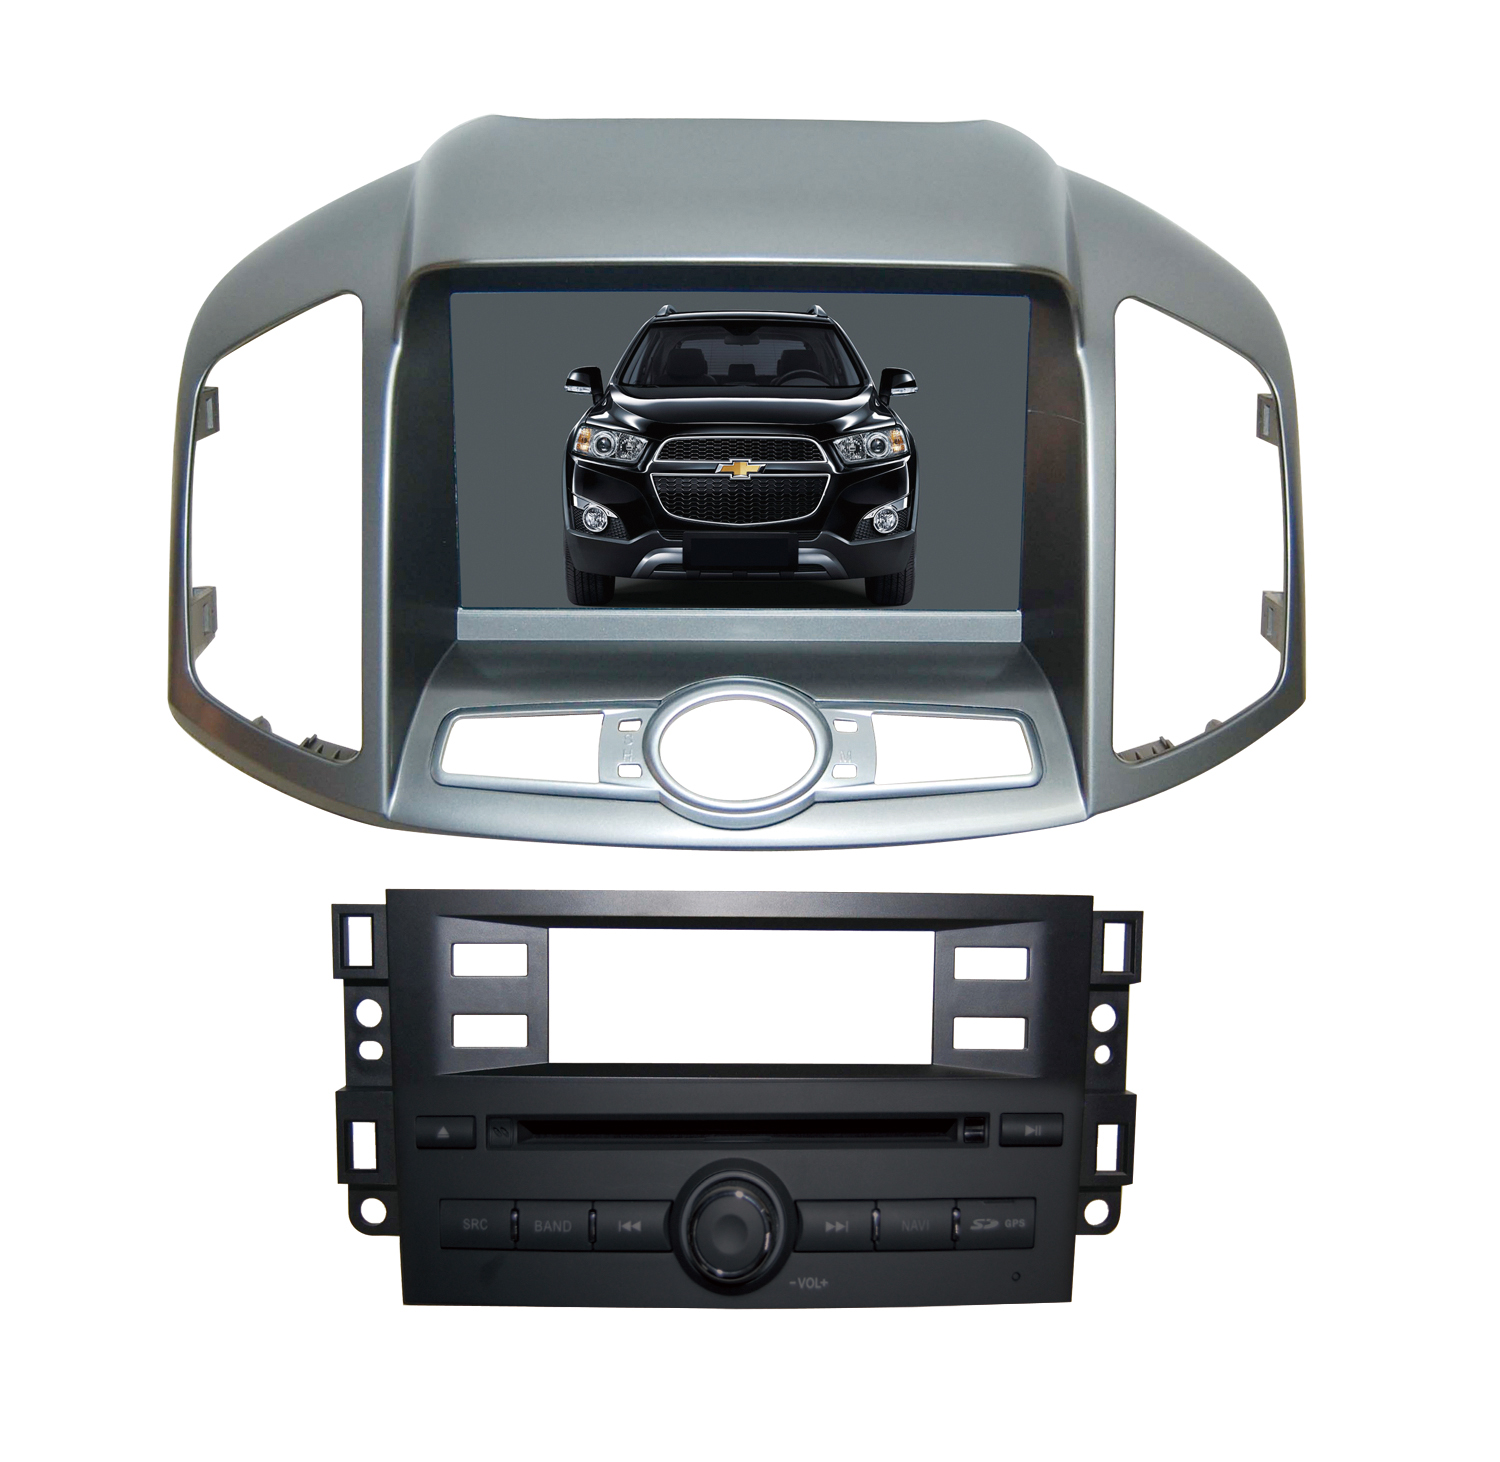 Autoradio AGW92 GPS WIFI DVD CD Bluetooth USB SD pour CHEVROLET Captiva (Android 8.1 processeur 2GHZ)